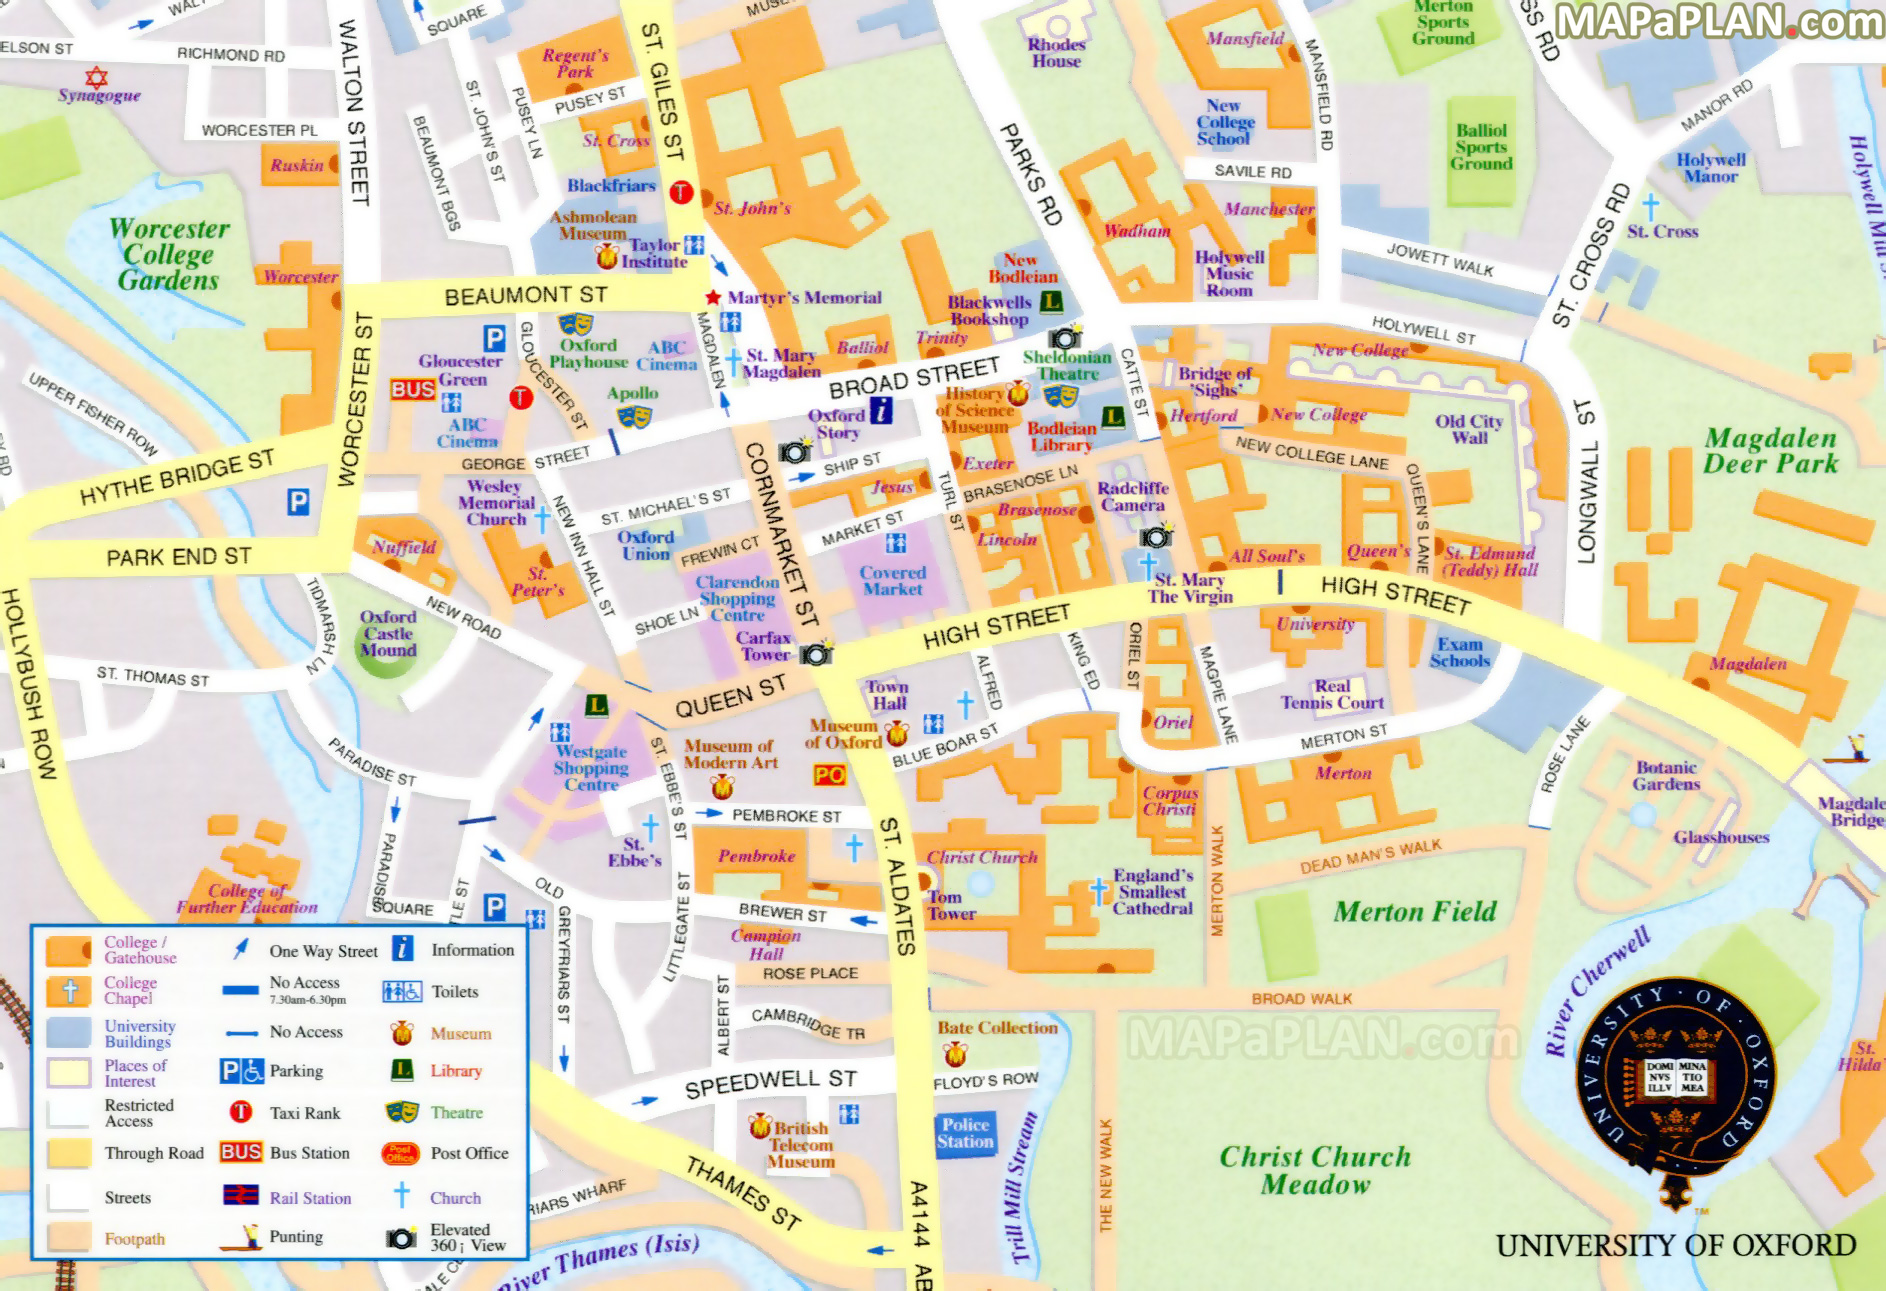 Oxford Street Map Oxford maps   Top tourist attractions   Free, printable city  Oxford Street Map